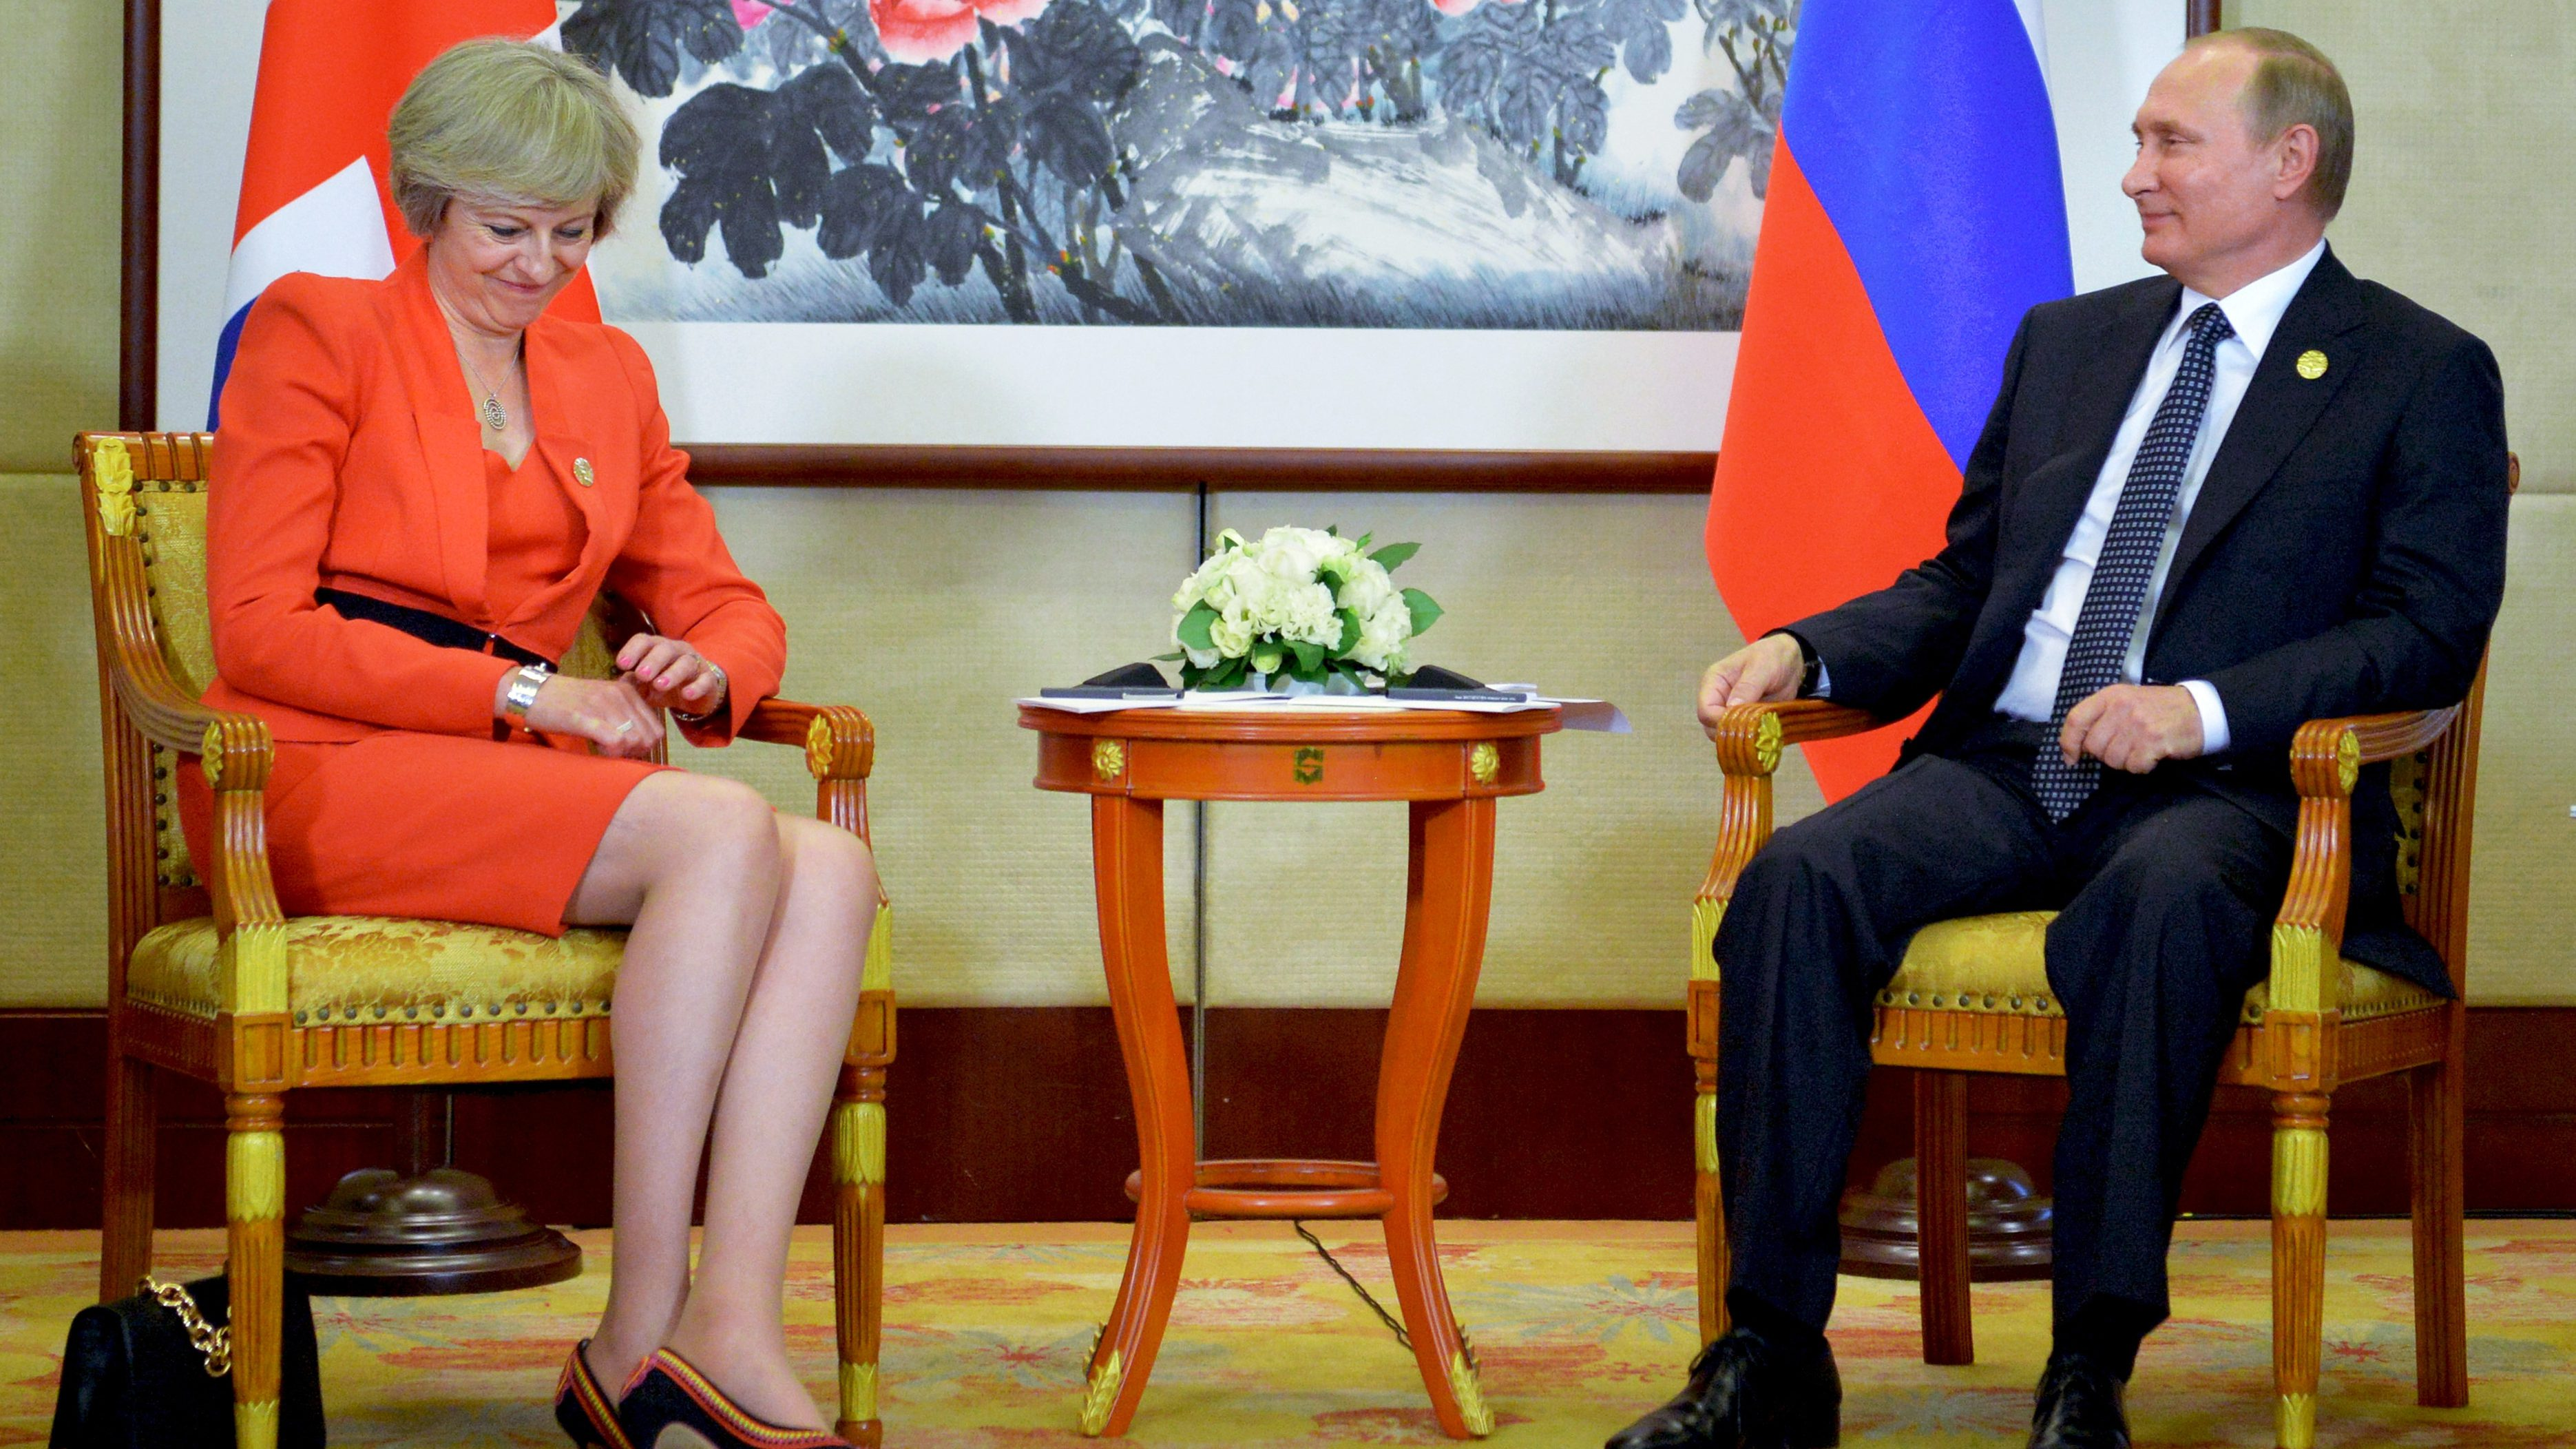 Russian President Vladimir Putin, right, listens to British Prime Minister Theresa May during a bilateral meeting in Hangzhou, China, Sunday, Sept. 4, 2016, ahead of the G20 Leaders Summit. (Alexei Druzhinin/Pool Photo via AP)